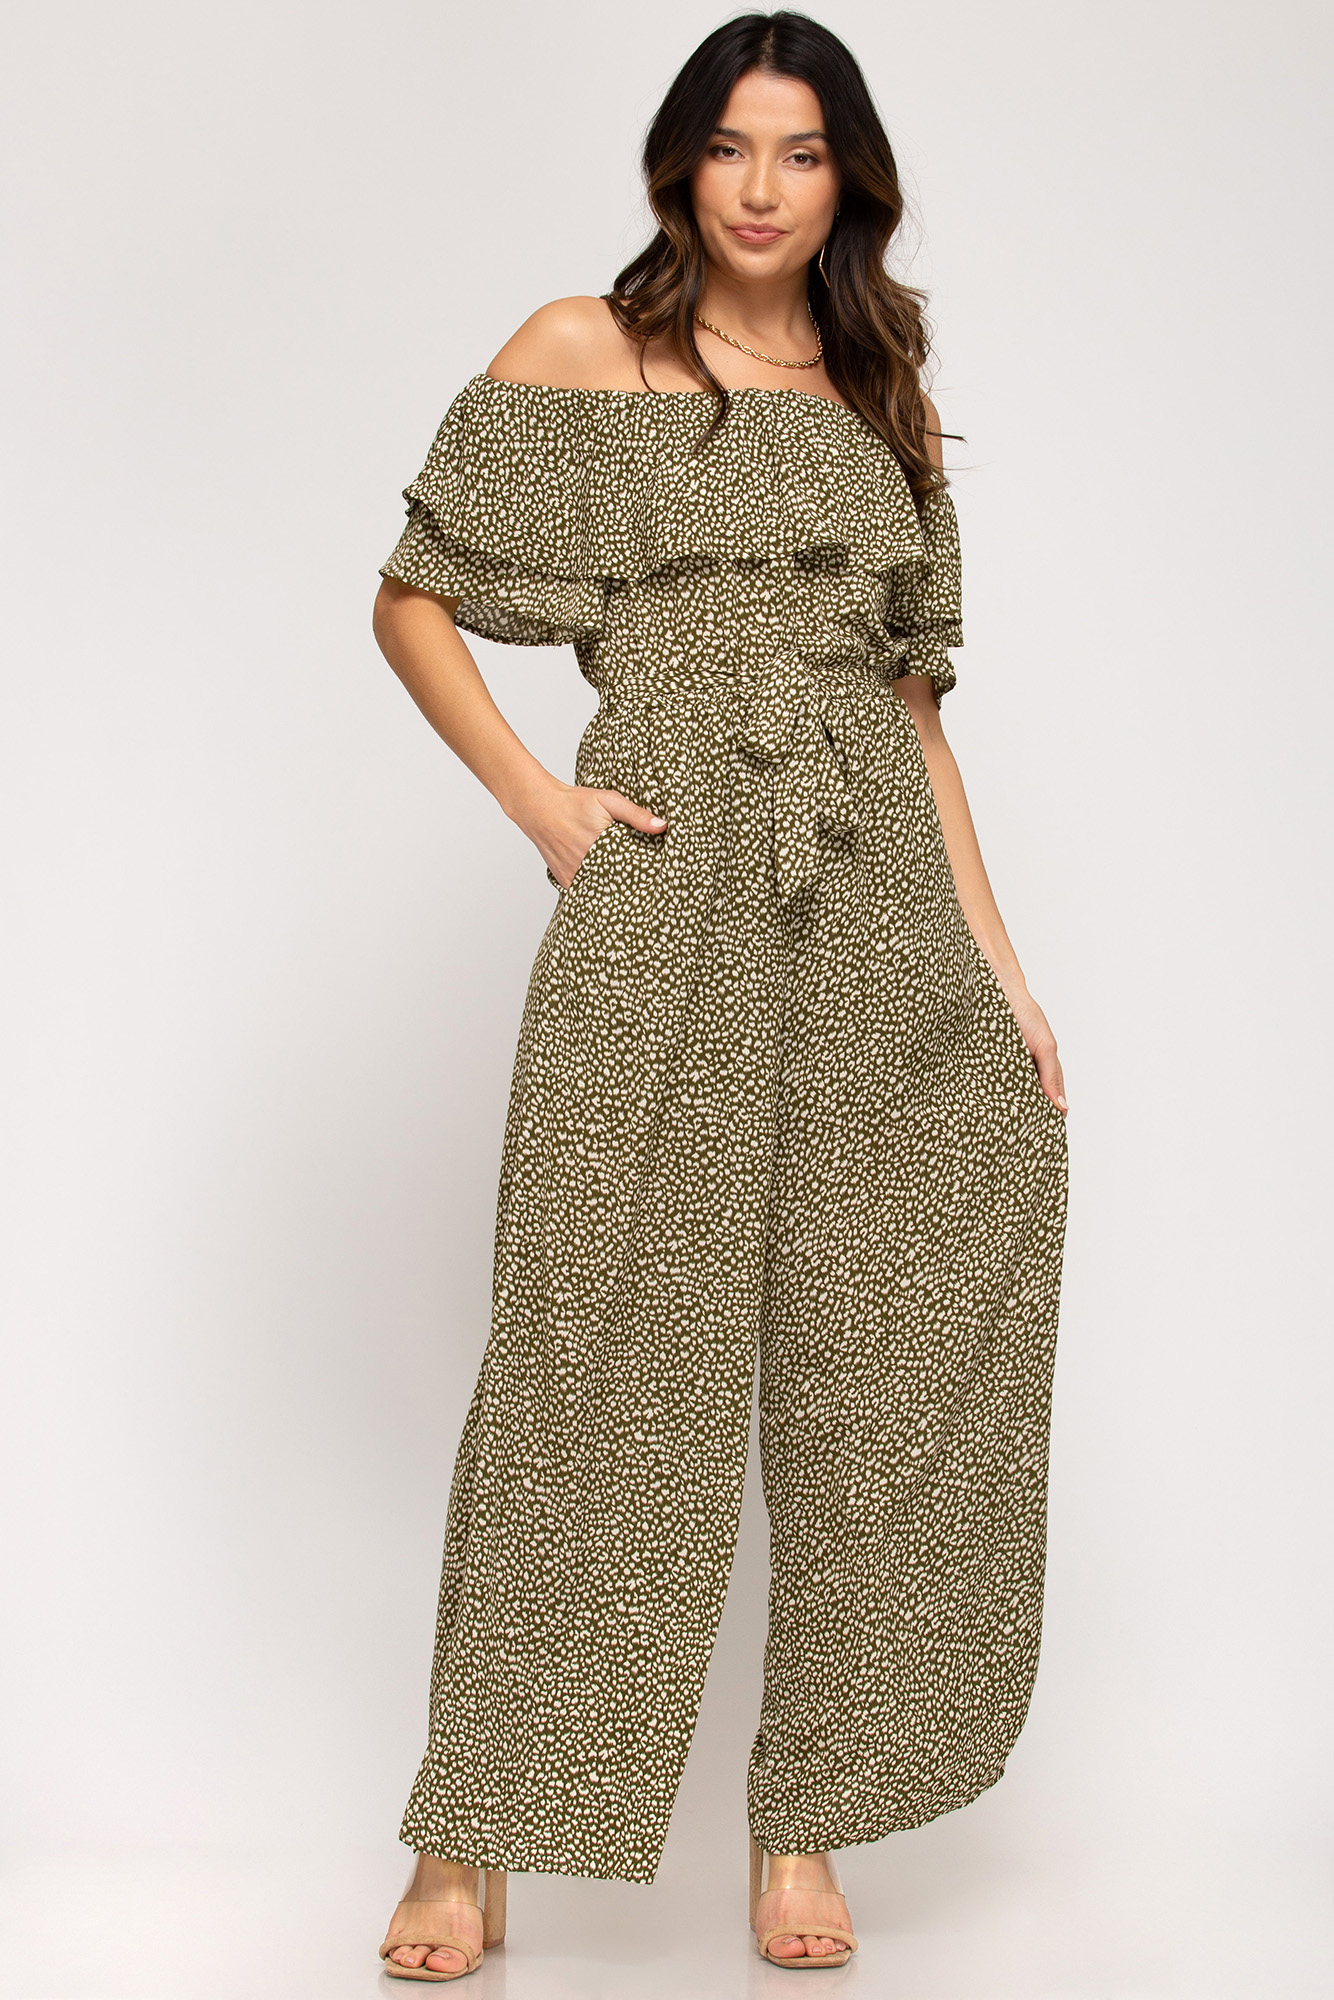 Ruffle Off Shoulder Jumpsuit from She & Sky